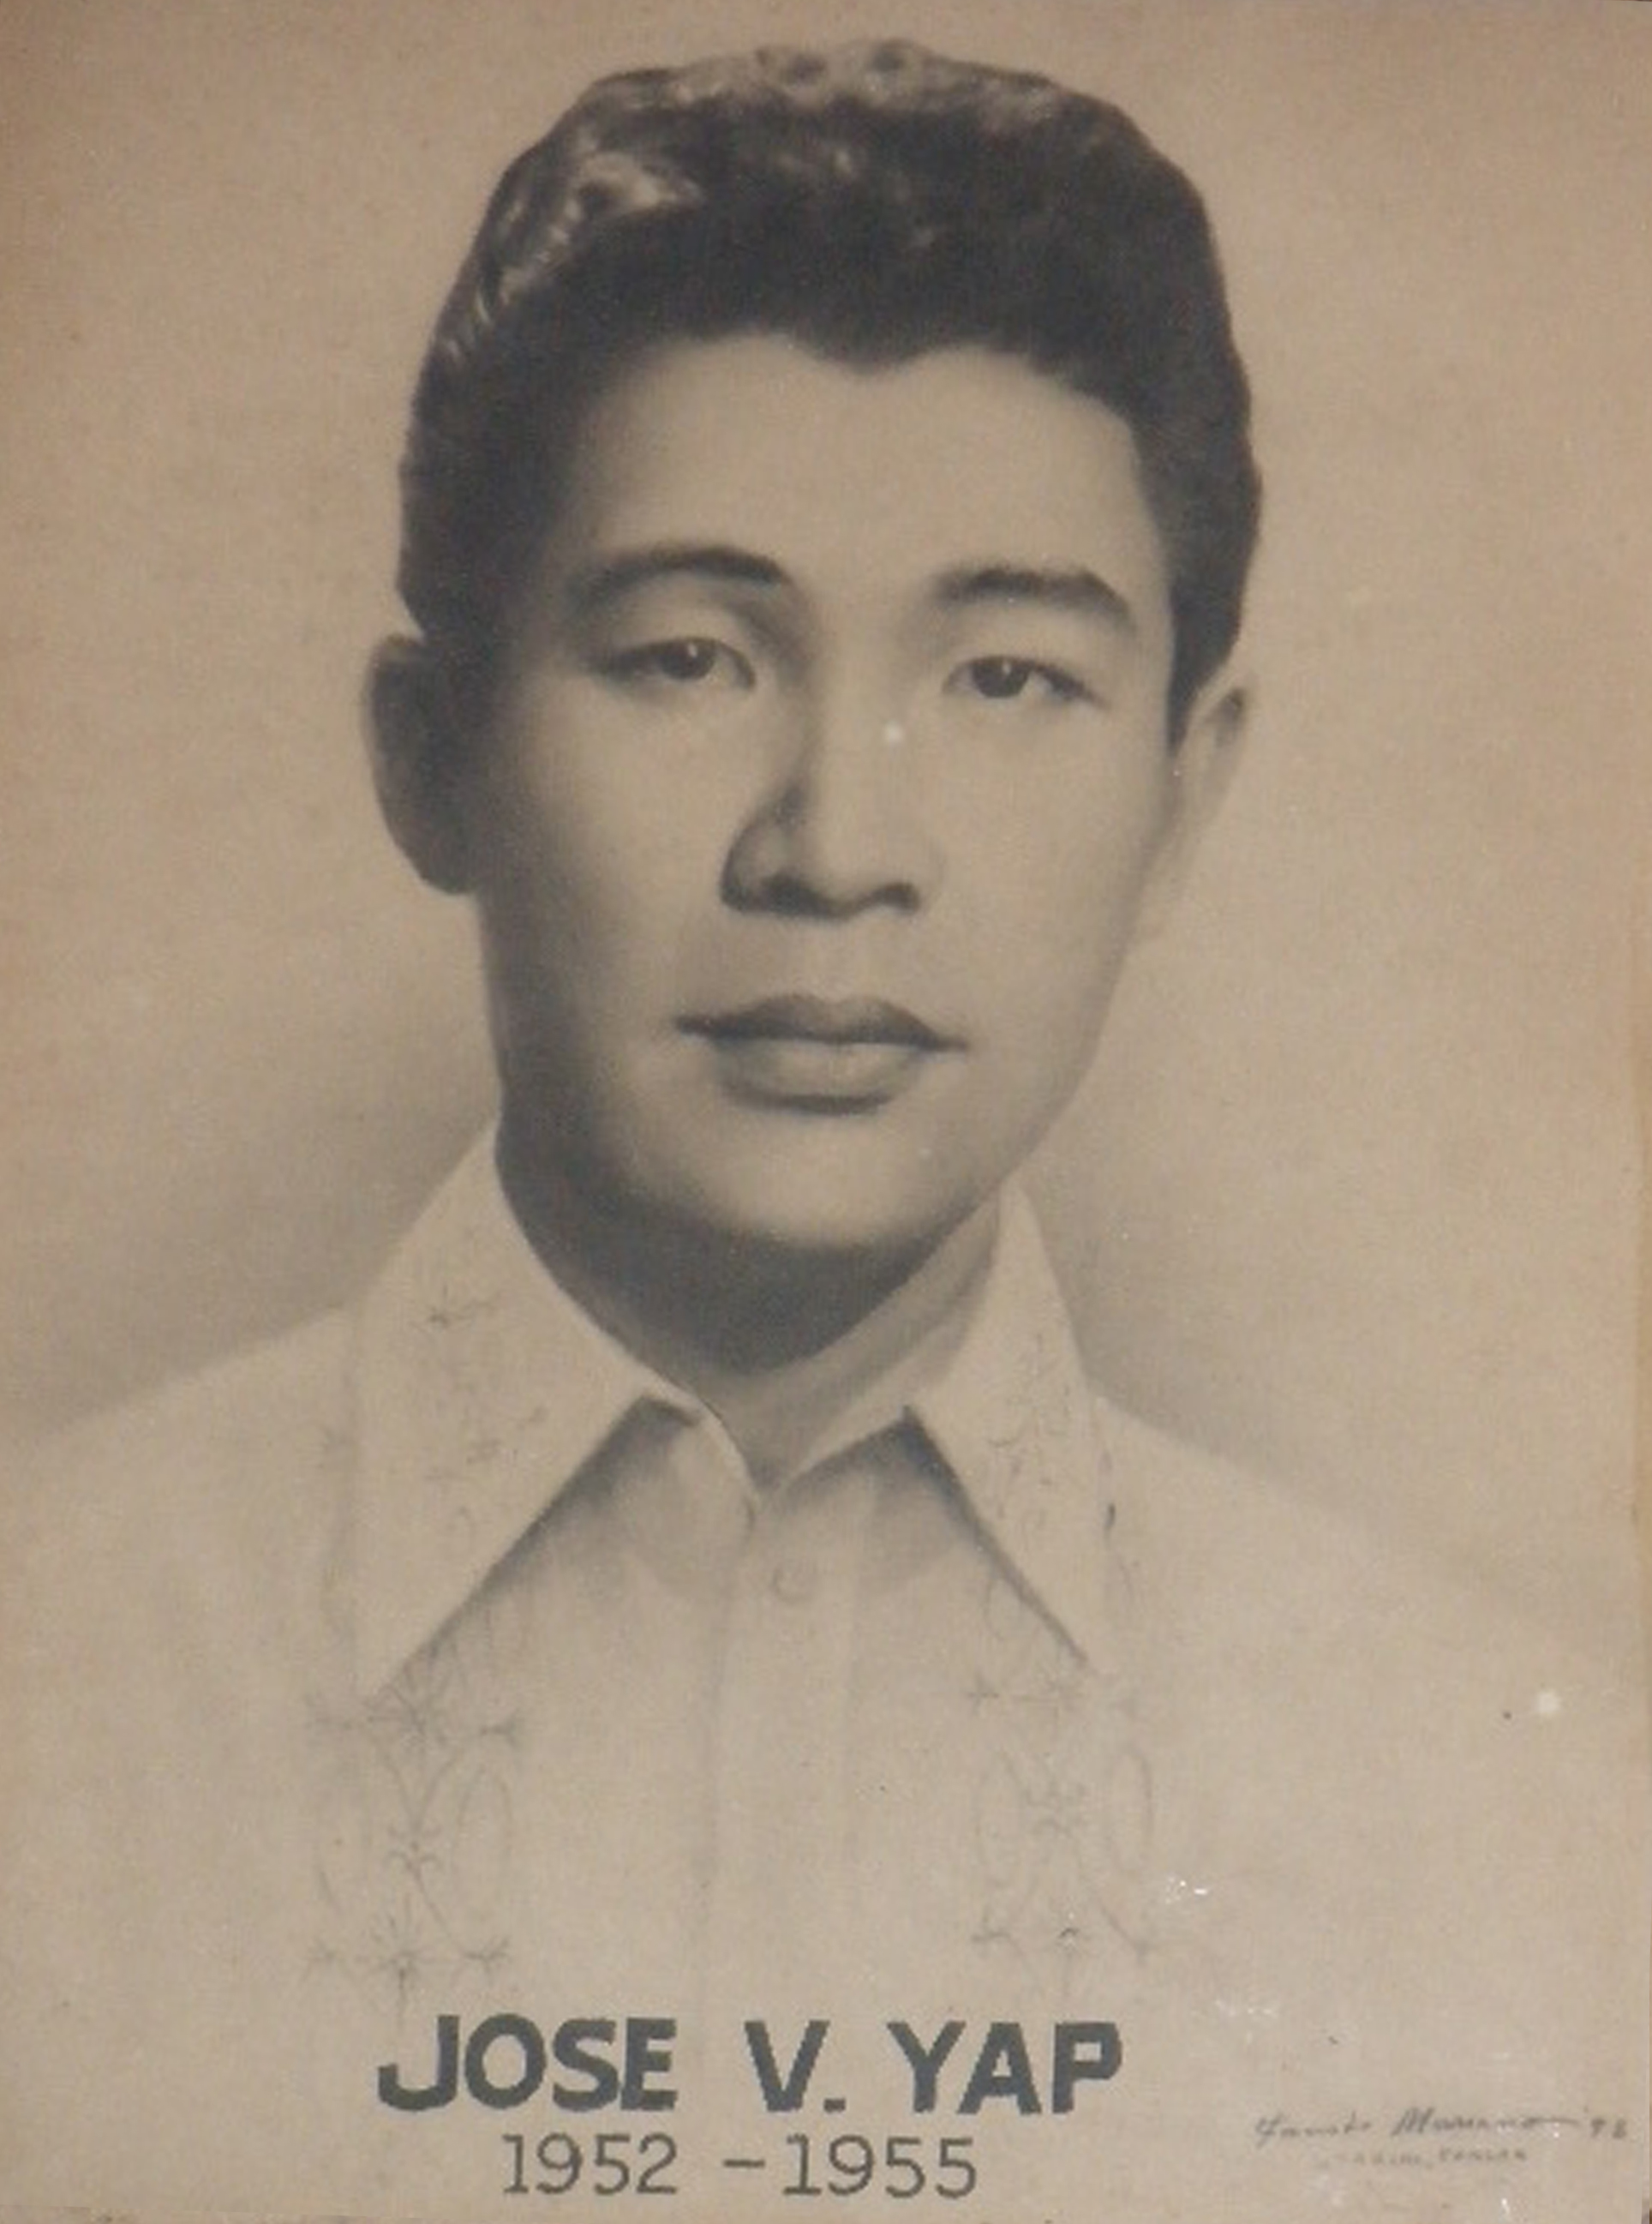 Mayor Jose Yap (1952-1955)